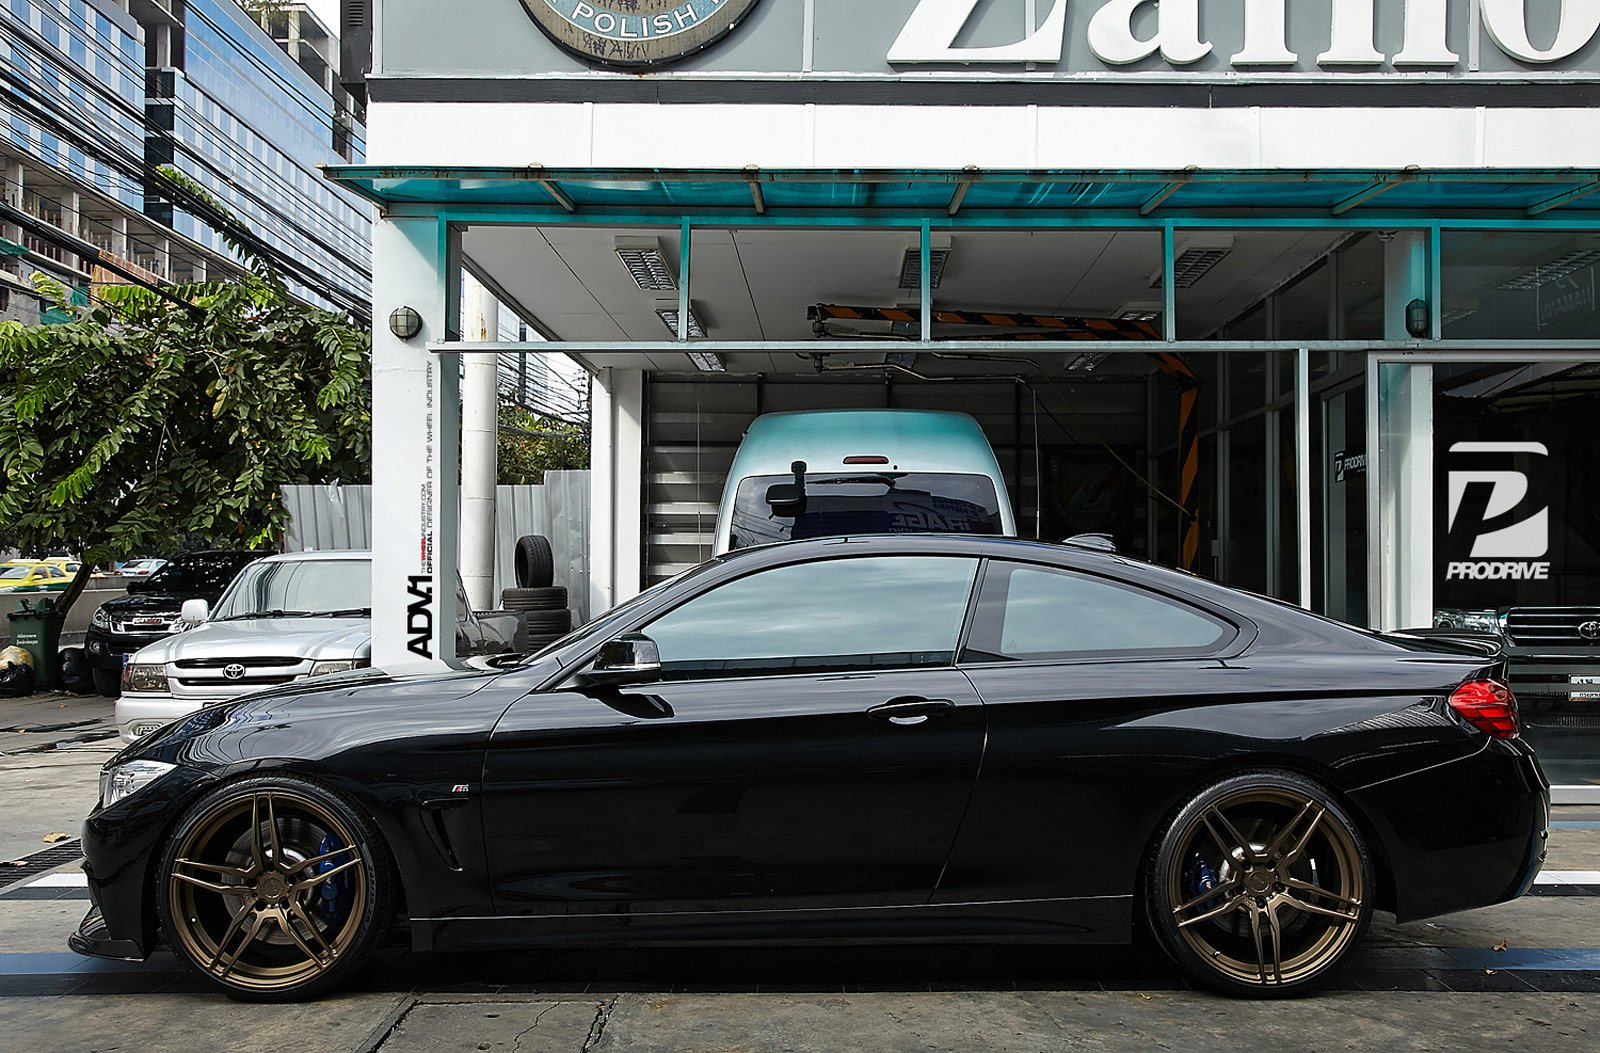 ADV1 wheels BMW F32 435I coupe tuning cars wallpaper ...